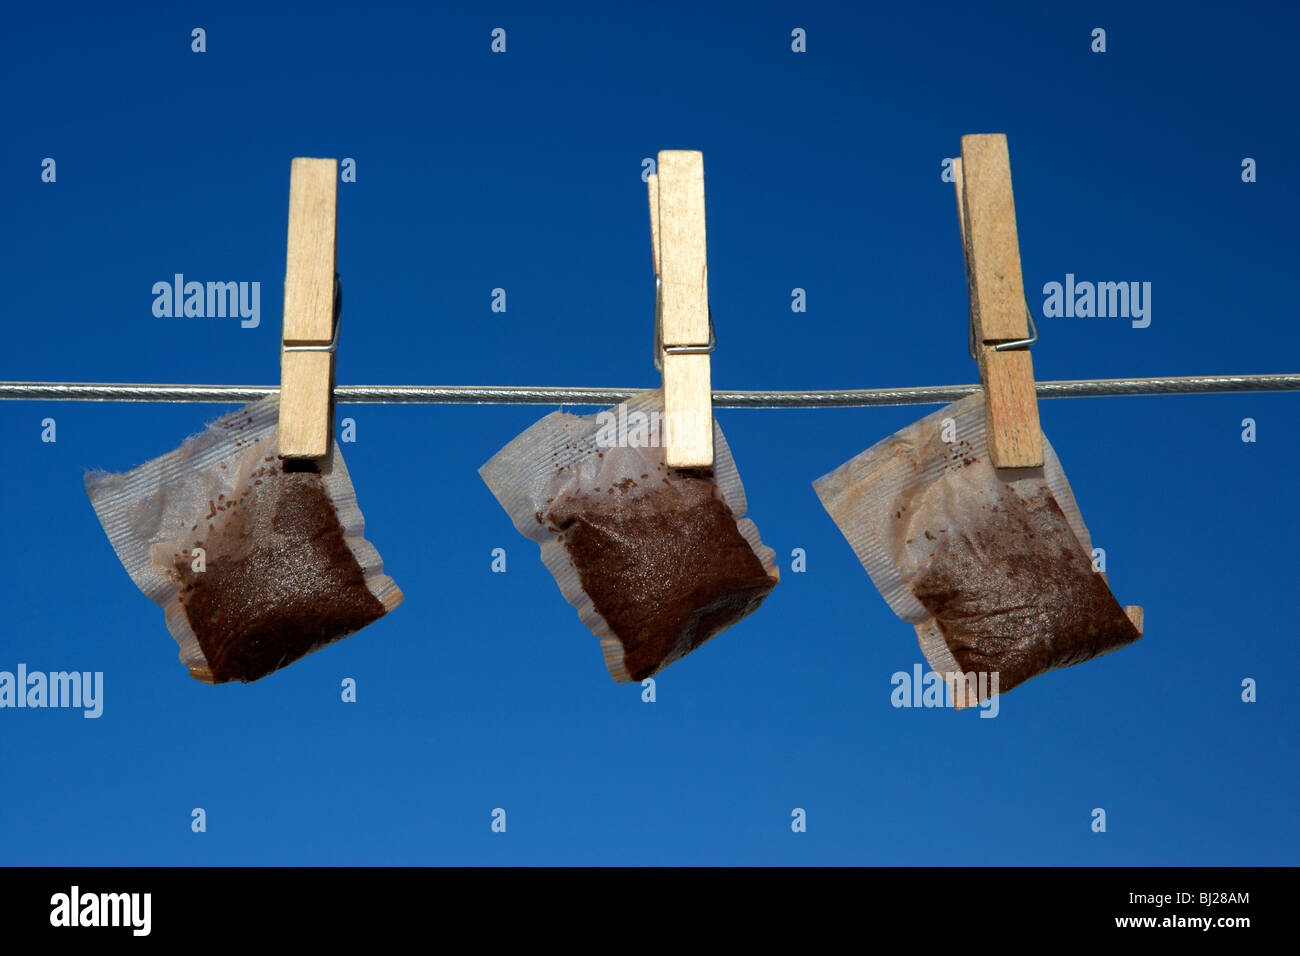 three wet teabags hanging on a washing line with blue sky - Stock Image